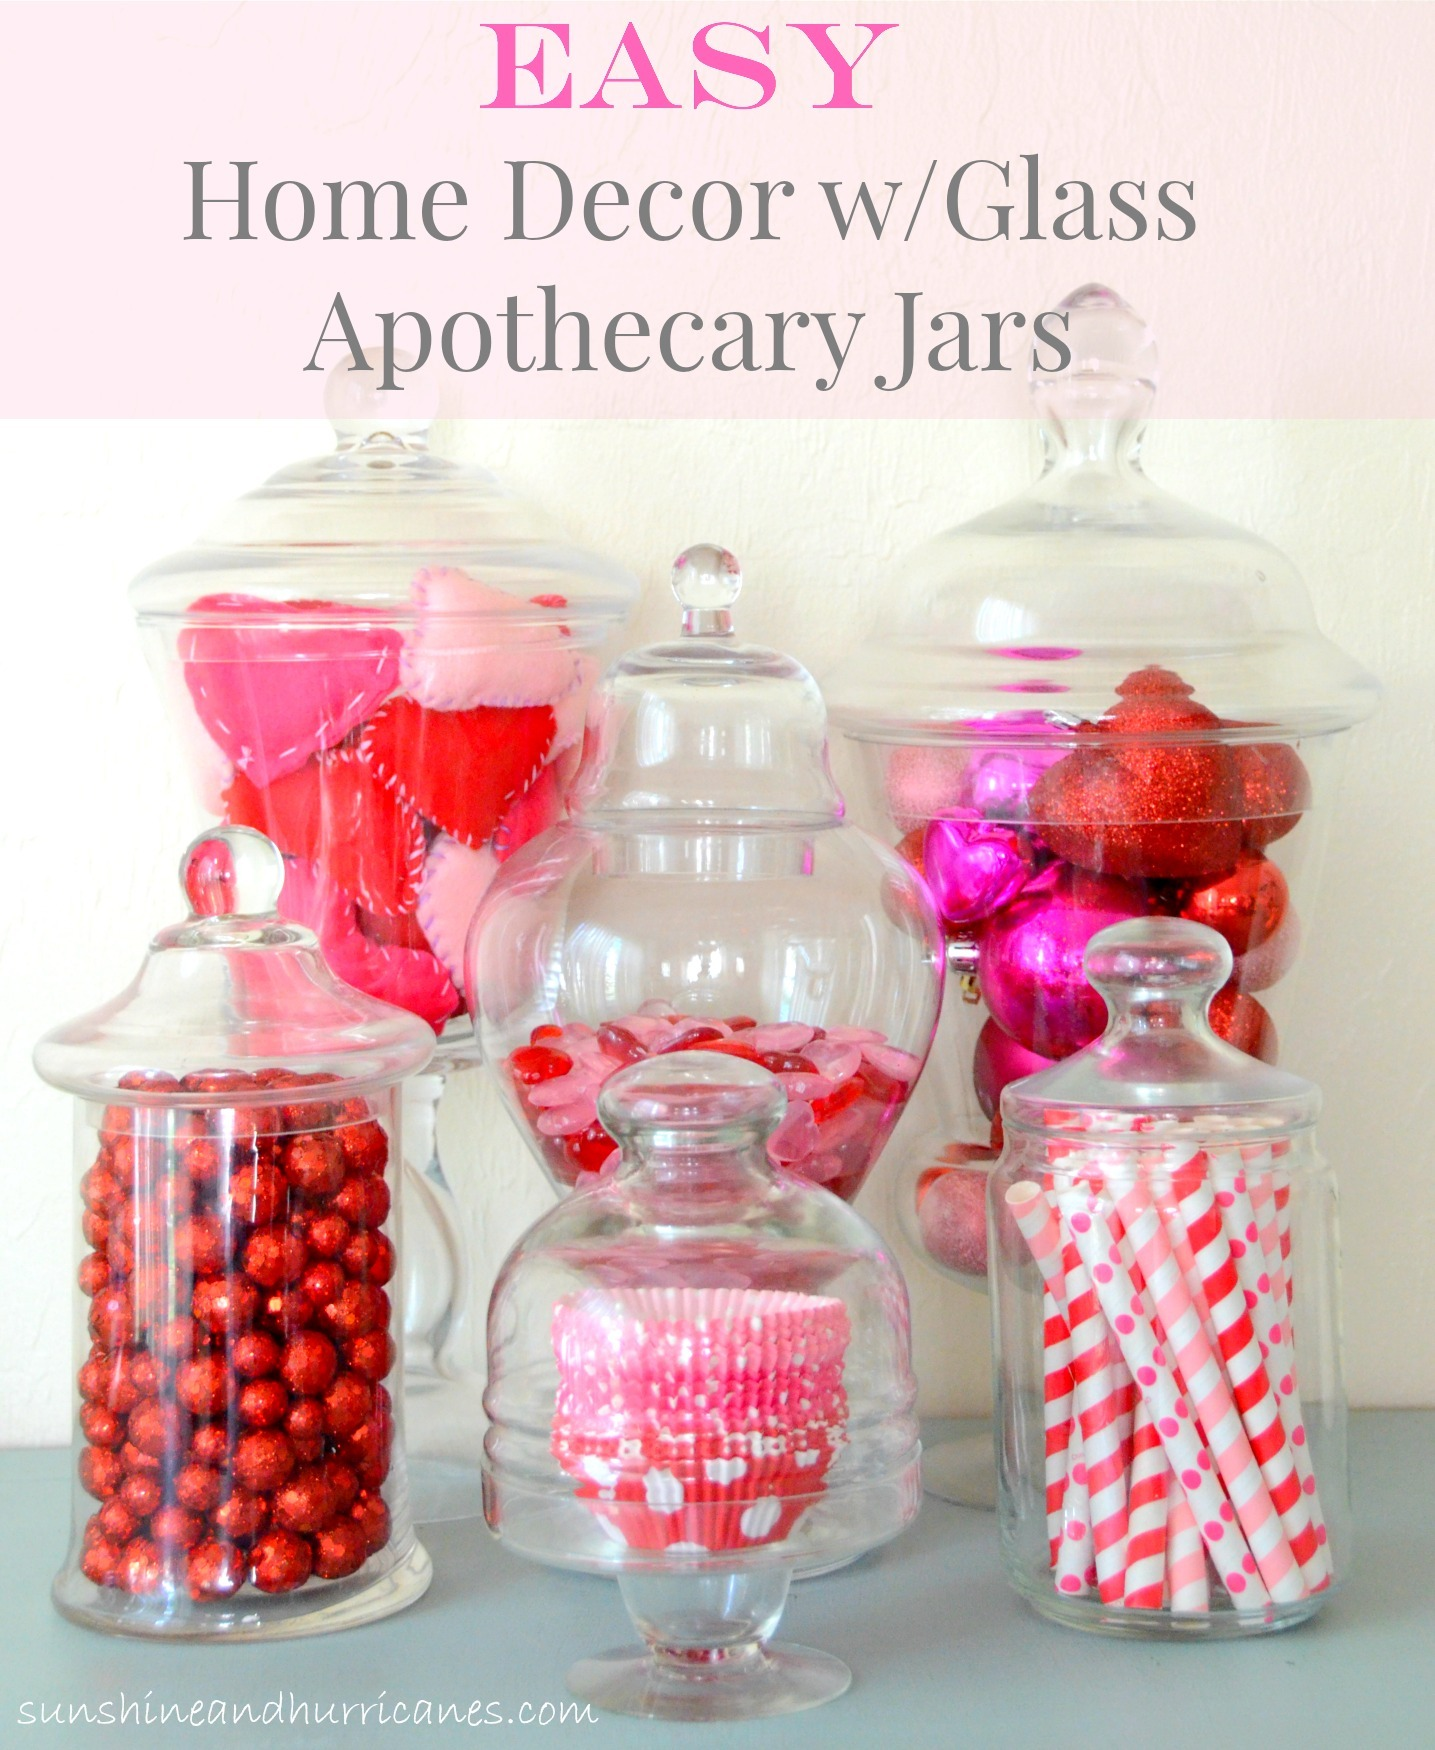 Best Easy Home Decor With Glass Apothecary Jars This Month